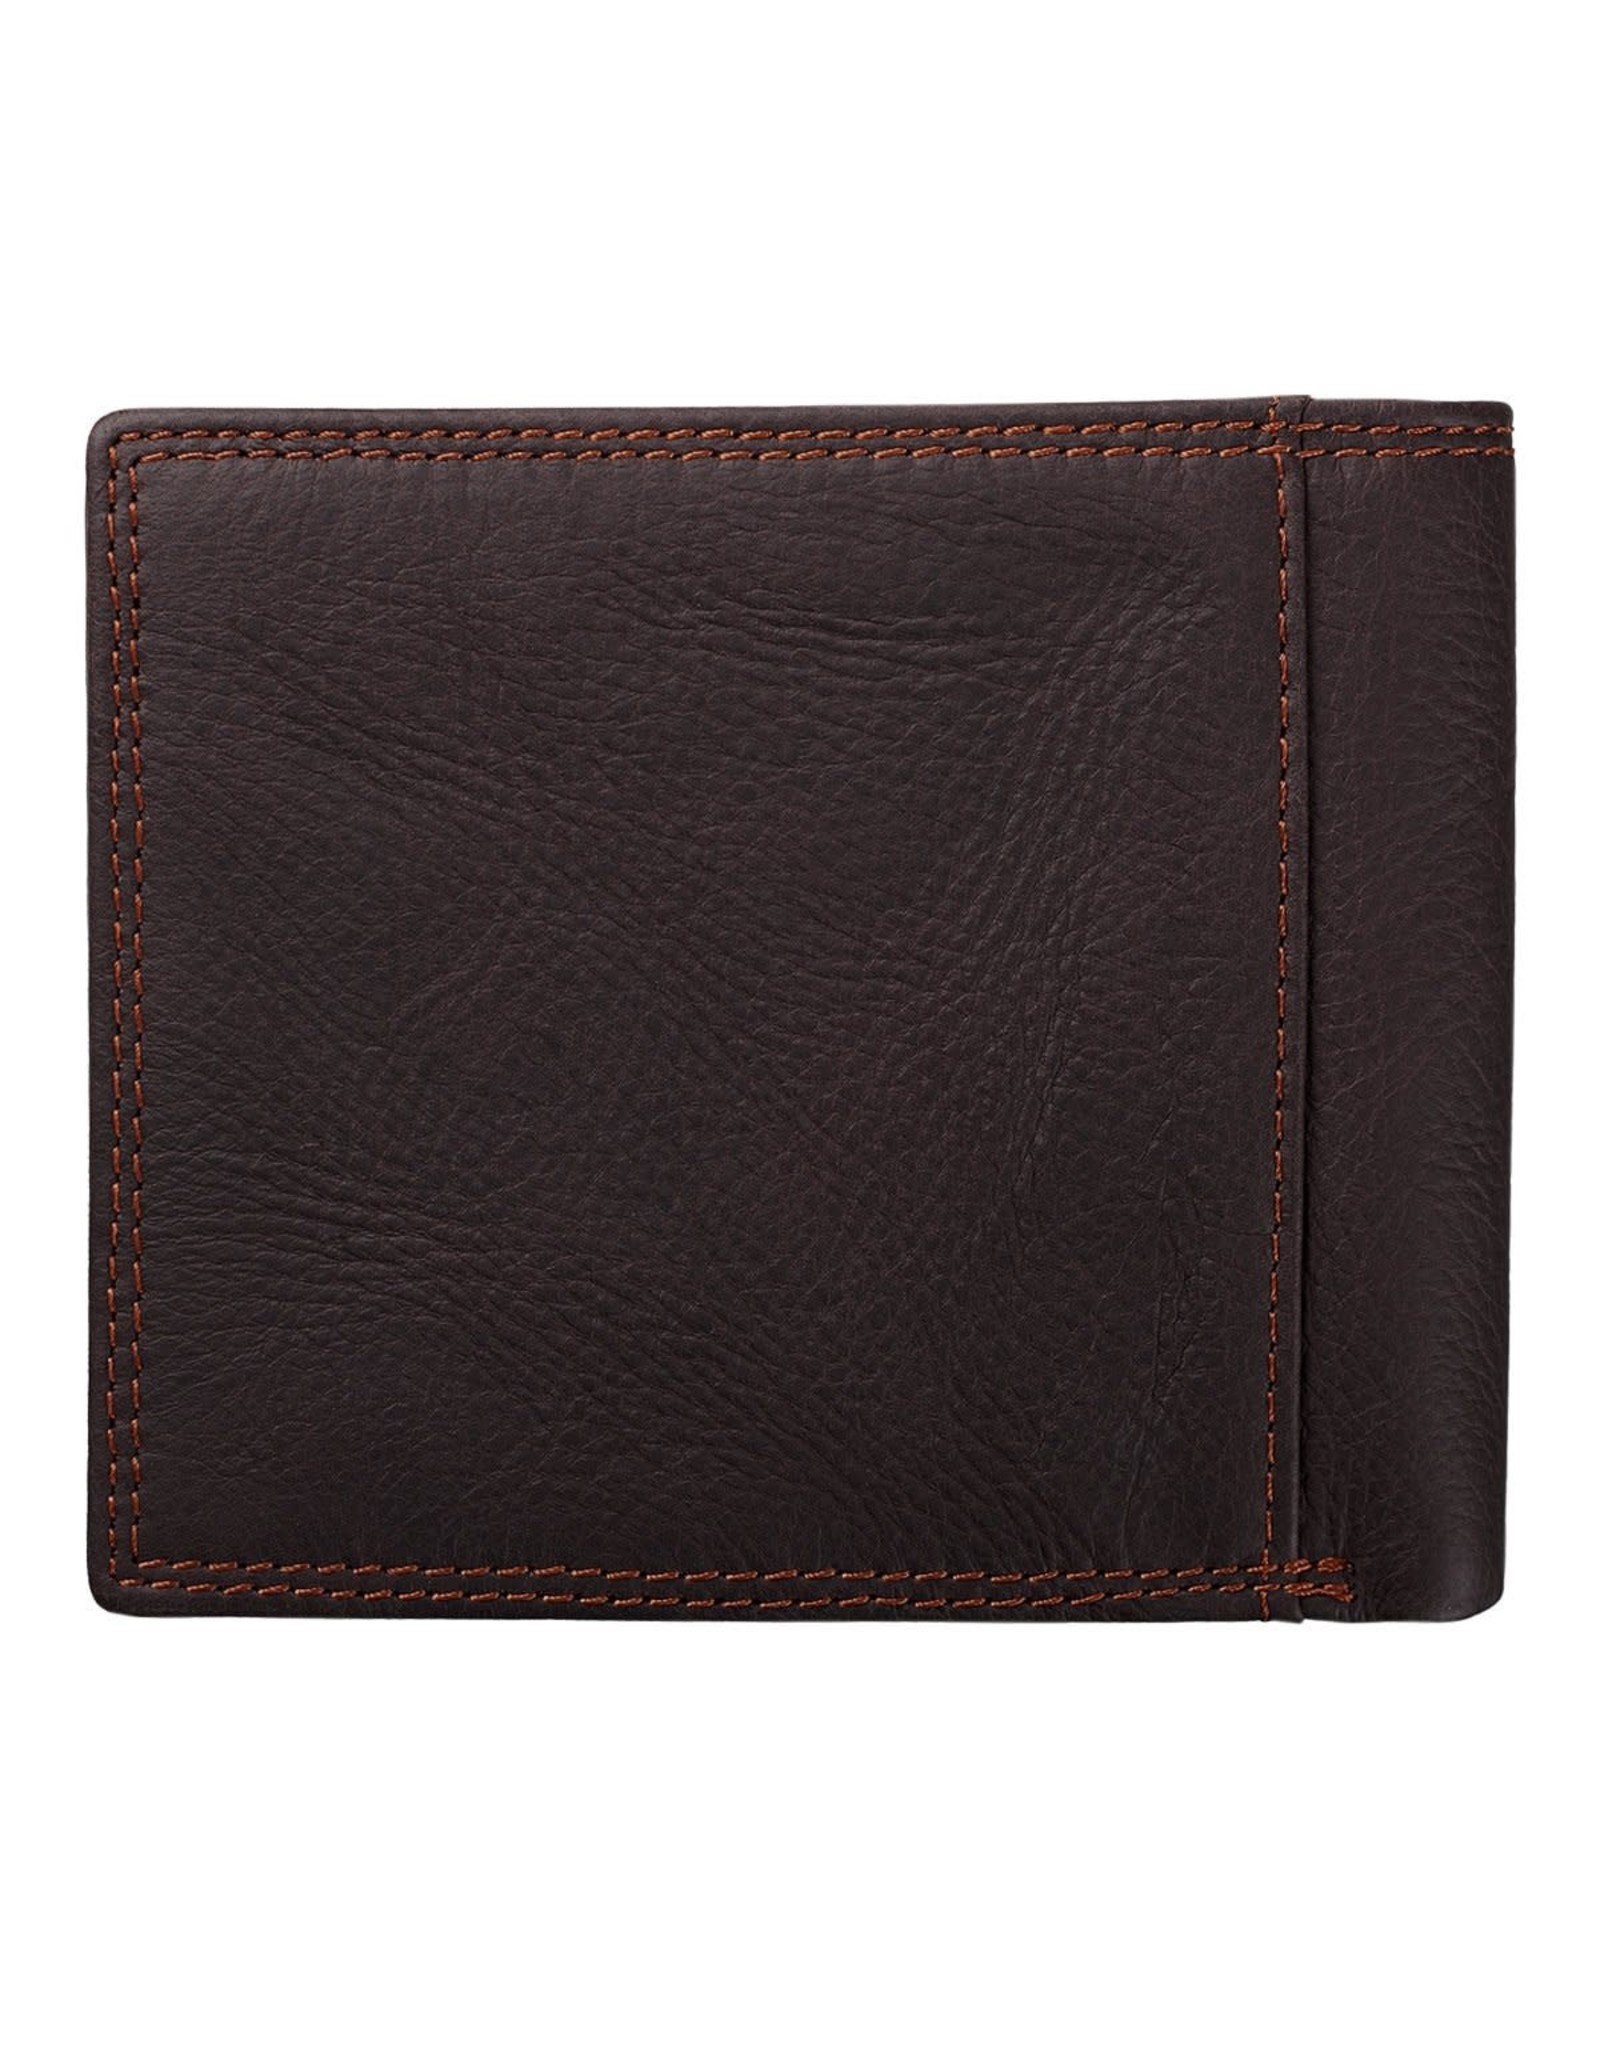 Wallet - Leather in Tin - Strong/Courageous